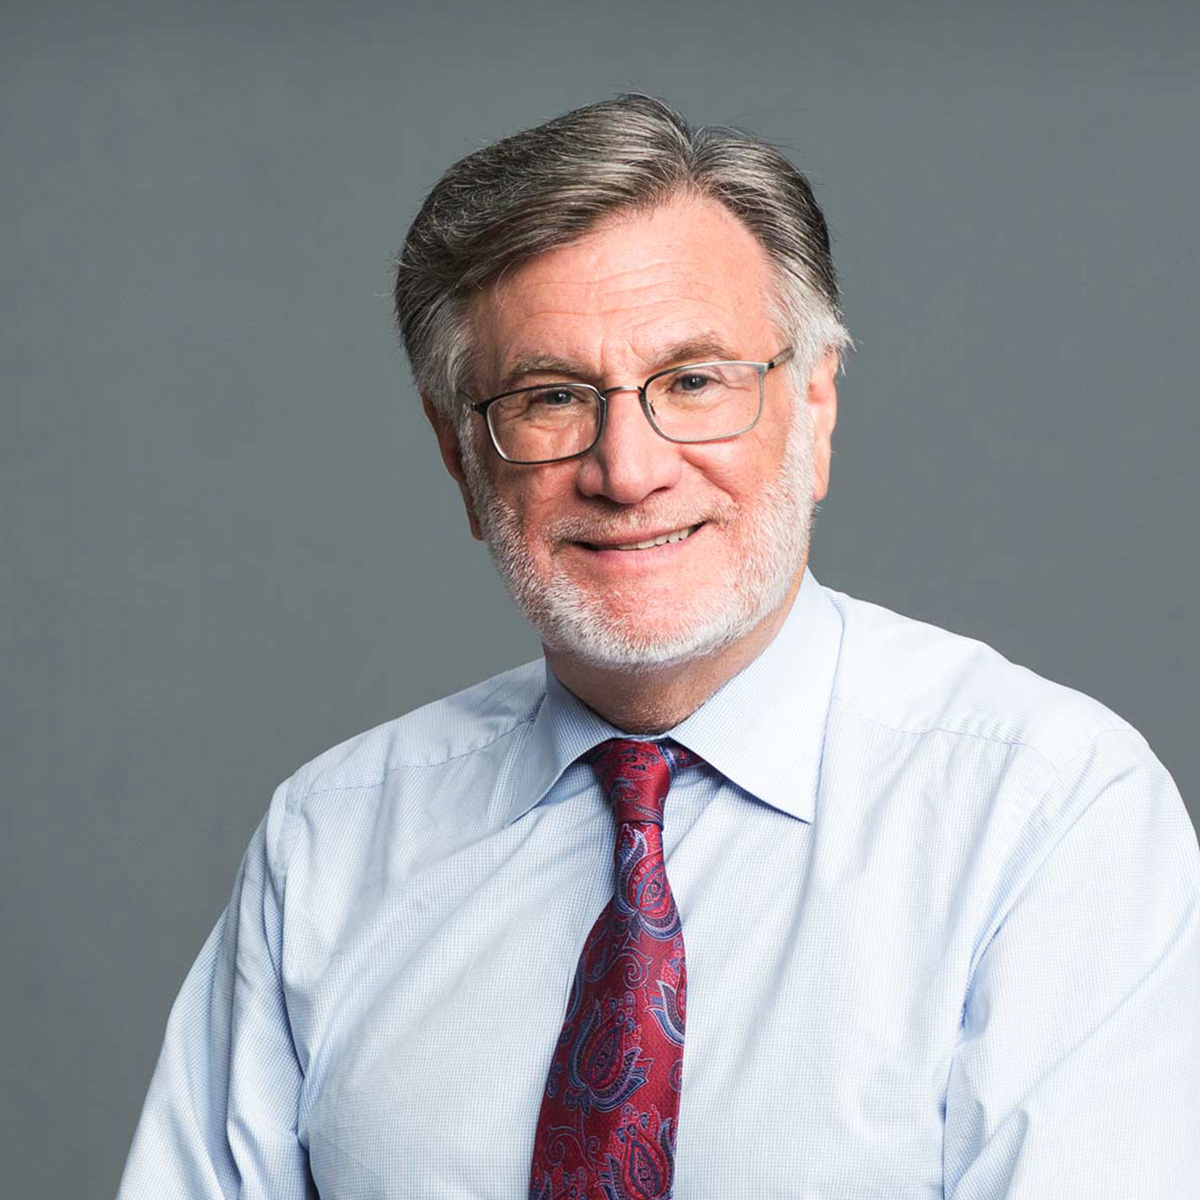 Steven B. Abramson, M.D. - Sr. Vice President & Vice Dean for Education,Faculty and Academic AffairsFrederick H. King Professor and Chair,Department of MedicineNYU School of Medicine; NYU Langone Health